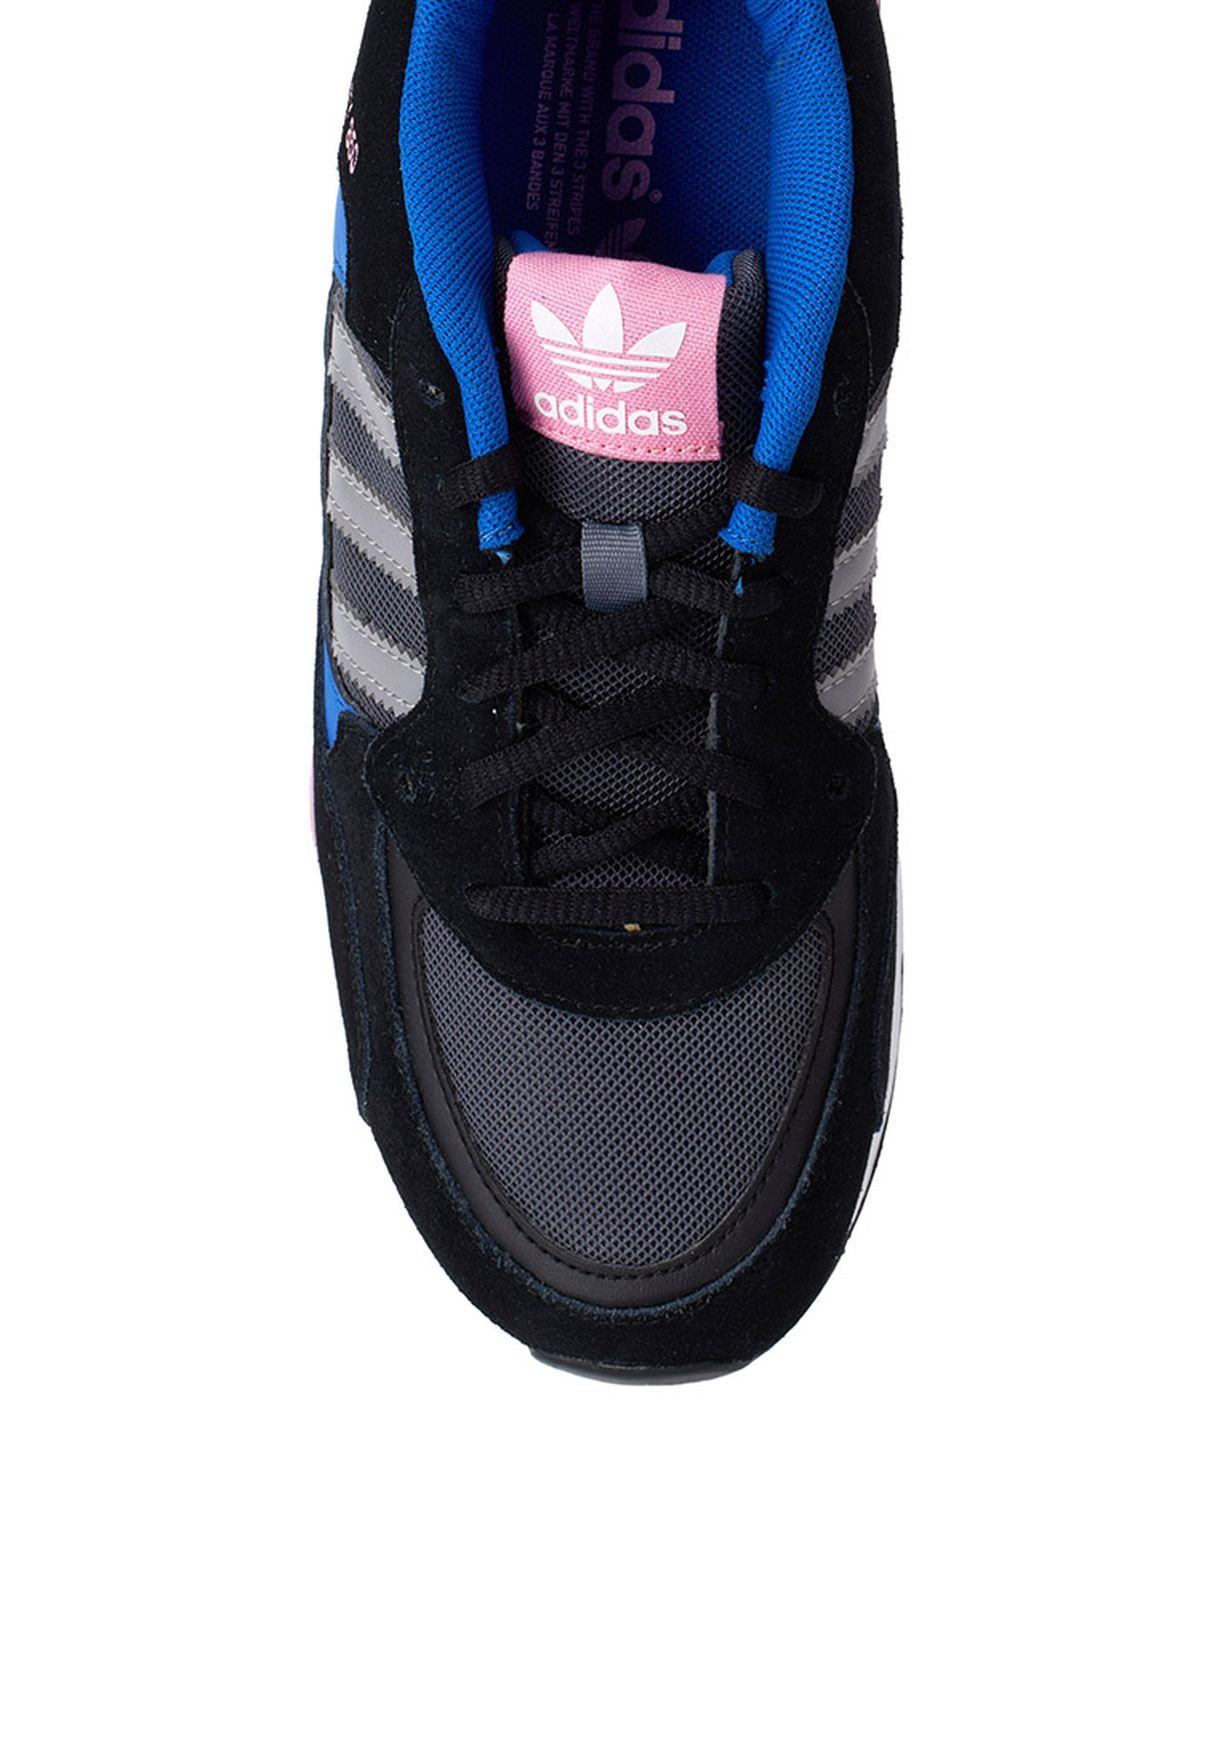 b6007fa959d1f Shop adidas Originals multicolor ZX 850 Sneakers M20905 for Women in ...